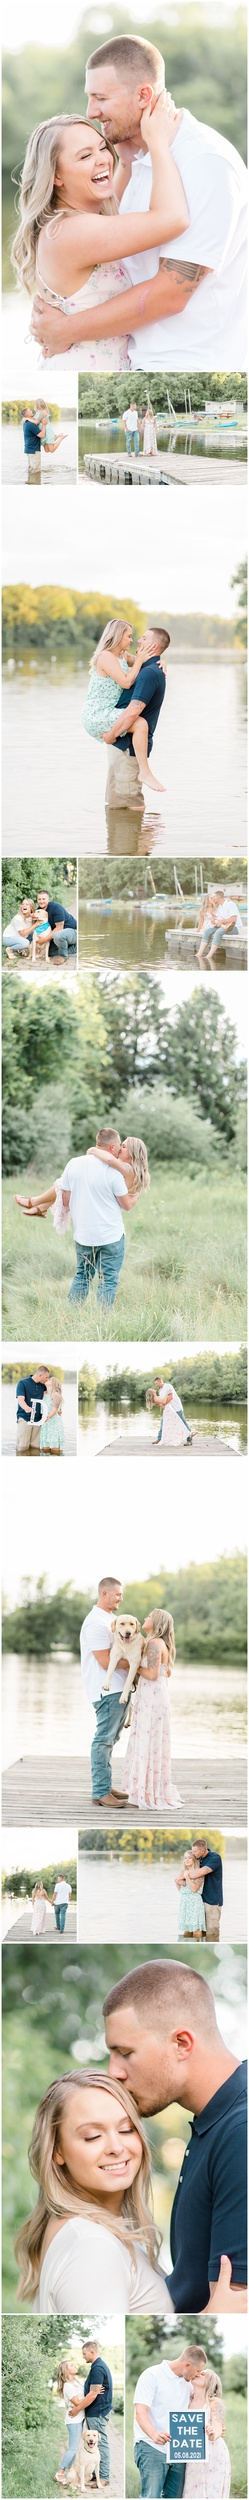 Gifford Pinchot State Park Engagement